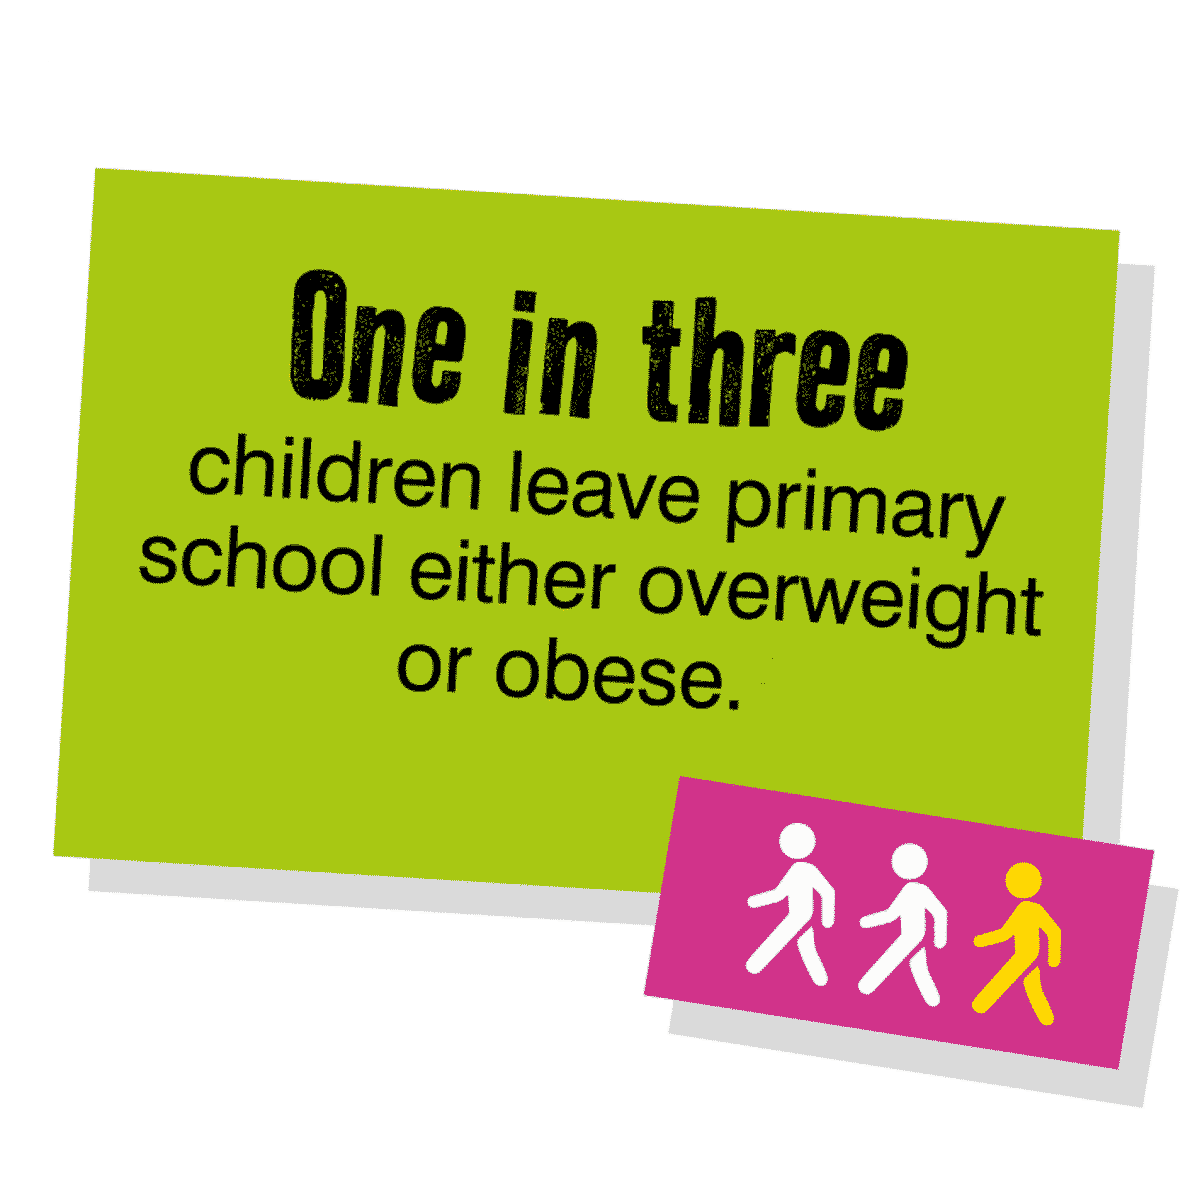 One in three children leave primary school overweightor obese